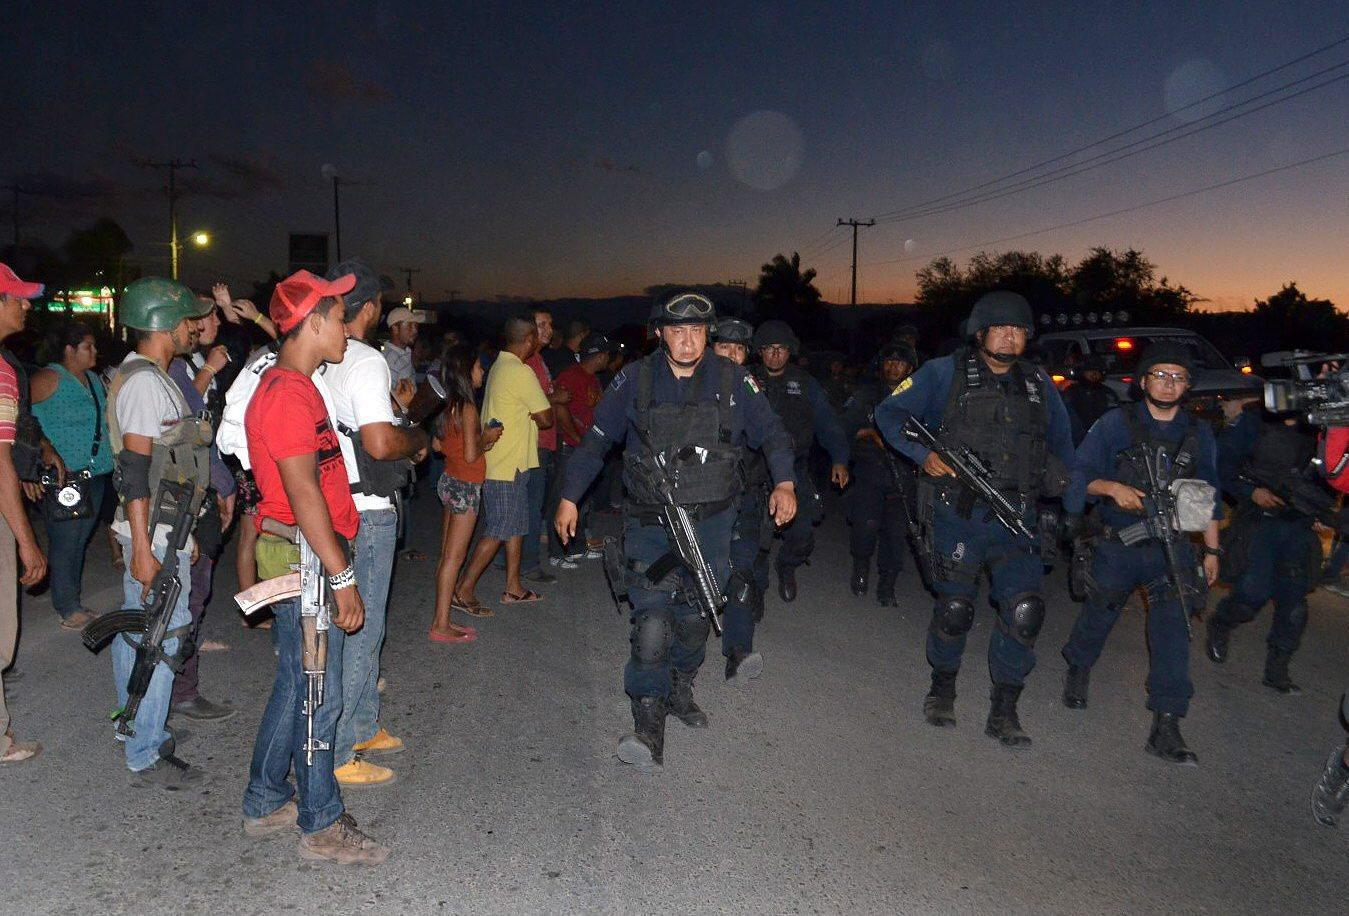 The detention of the interior minister of Mexico's western state of Michoacan appears to bolster accusations by vigilante groups that state officials have colluded with narcotics traffickers. Here, federal police guard the streets last month as members of a vigilante 'self-defense' group observe them in the village of La Ruana, Mexico.